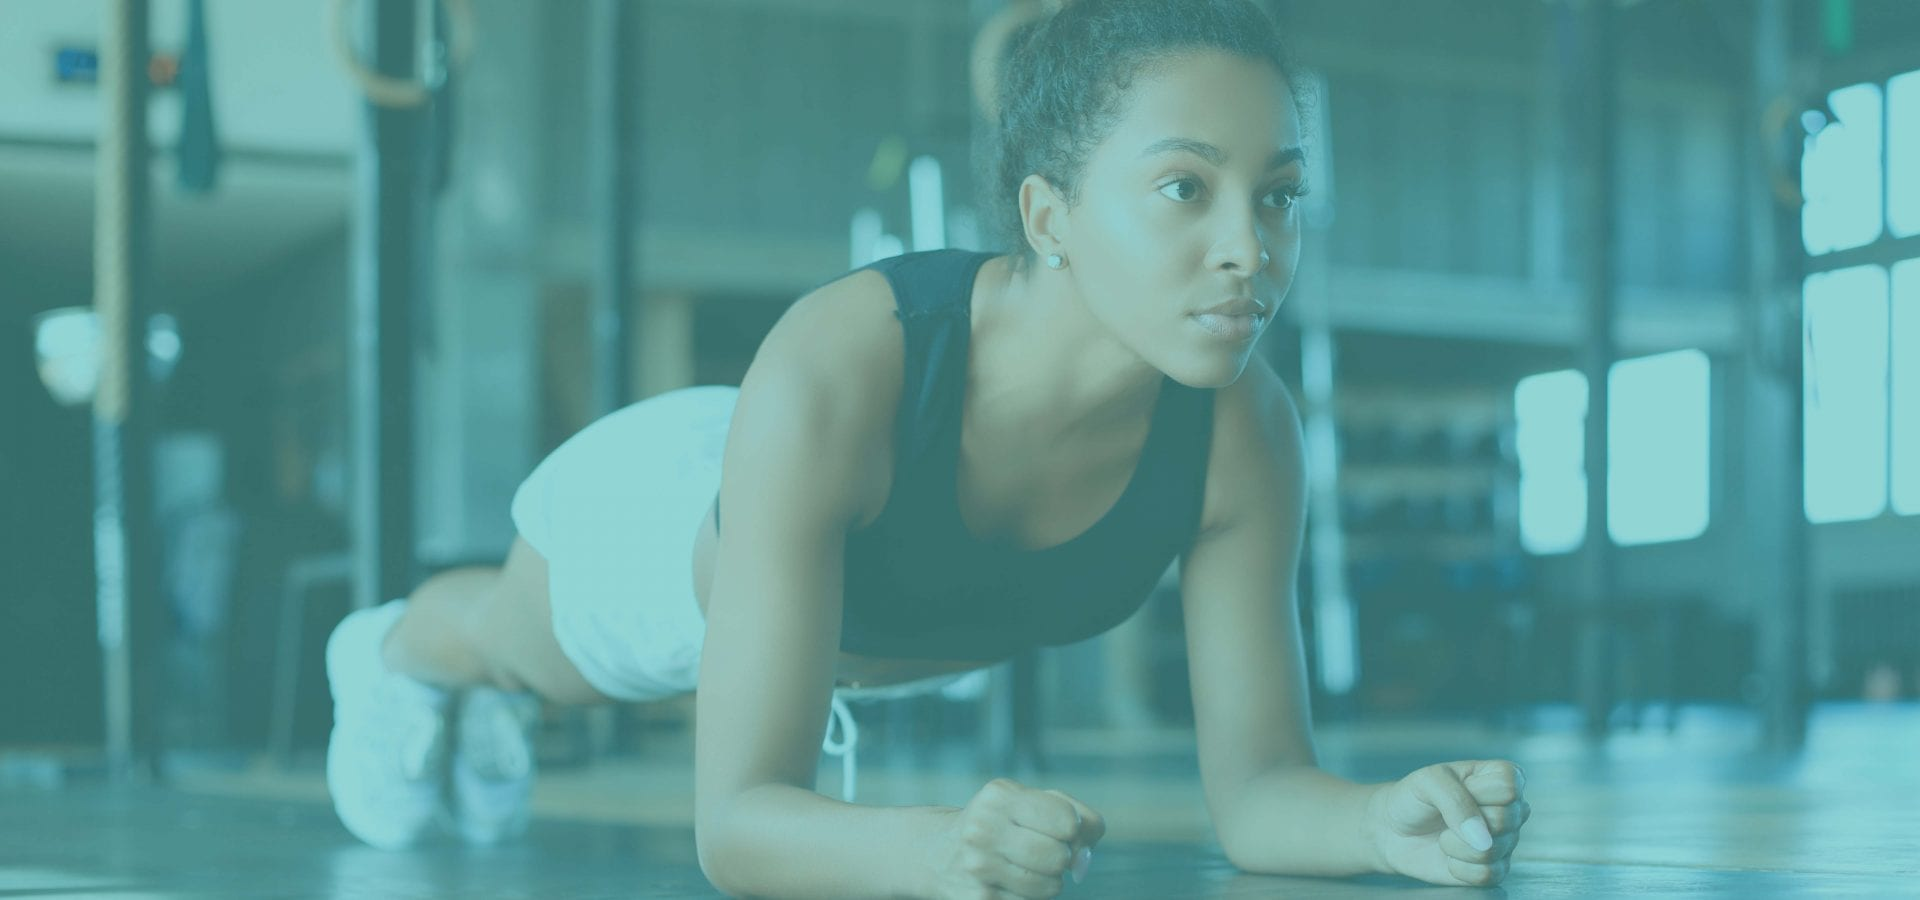 Woman in a plank exercise position